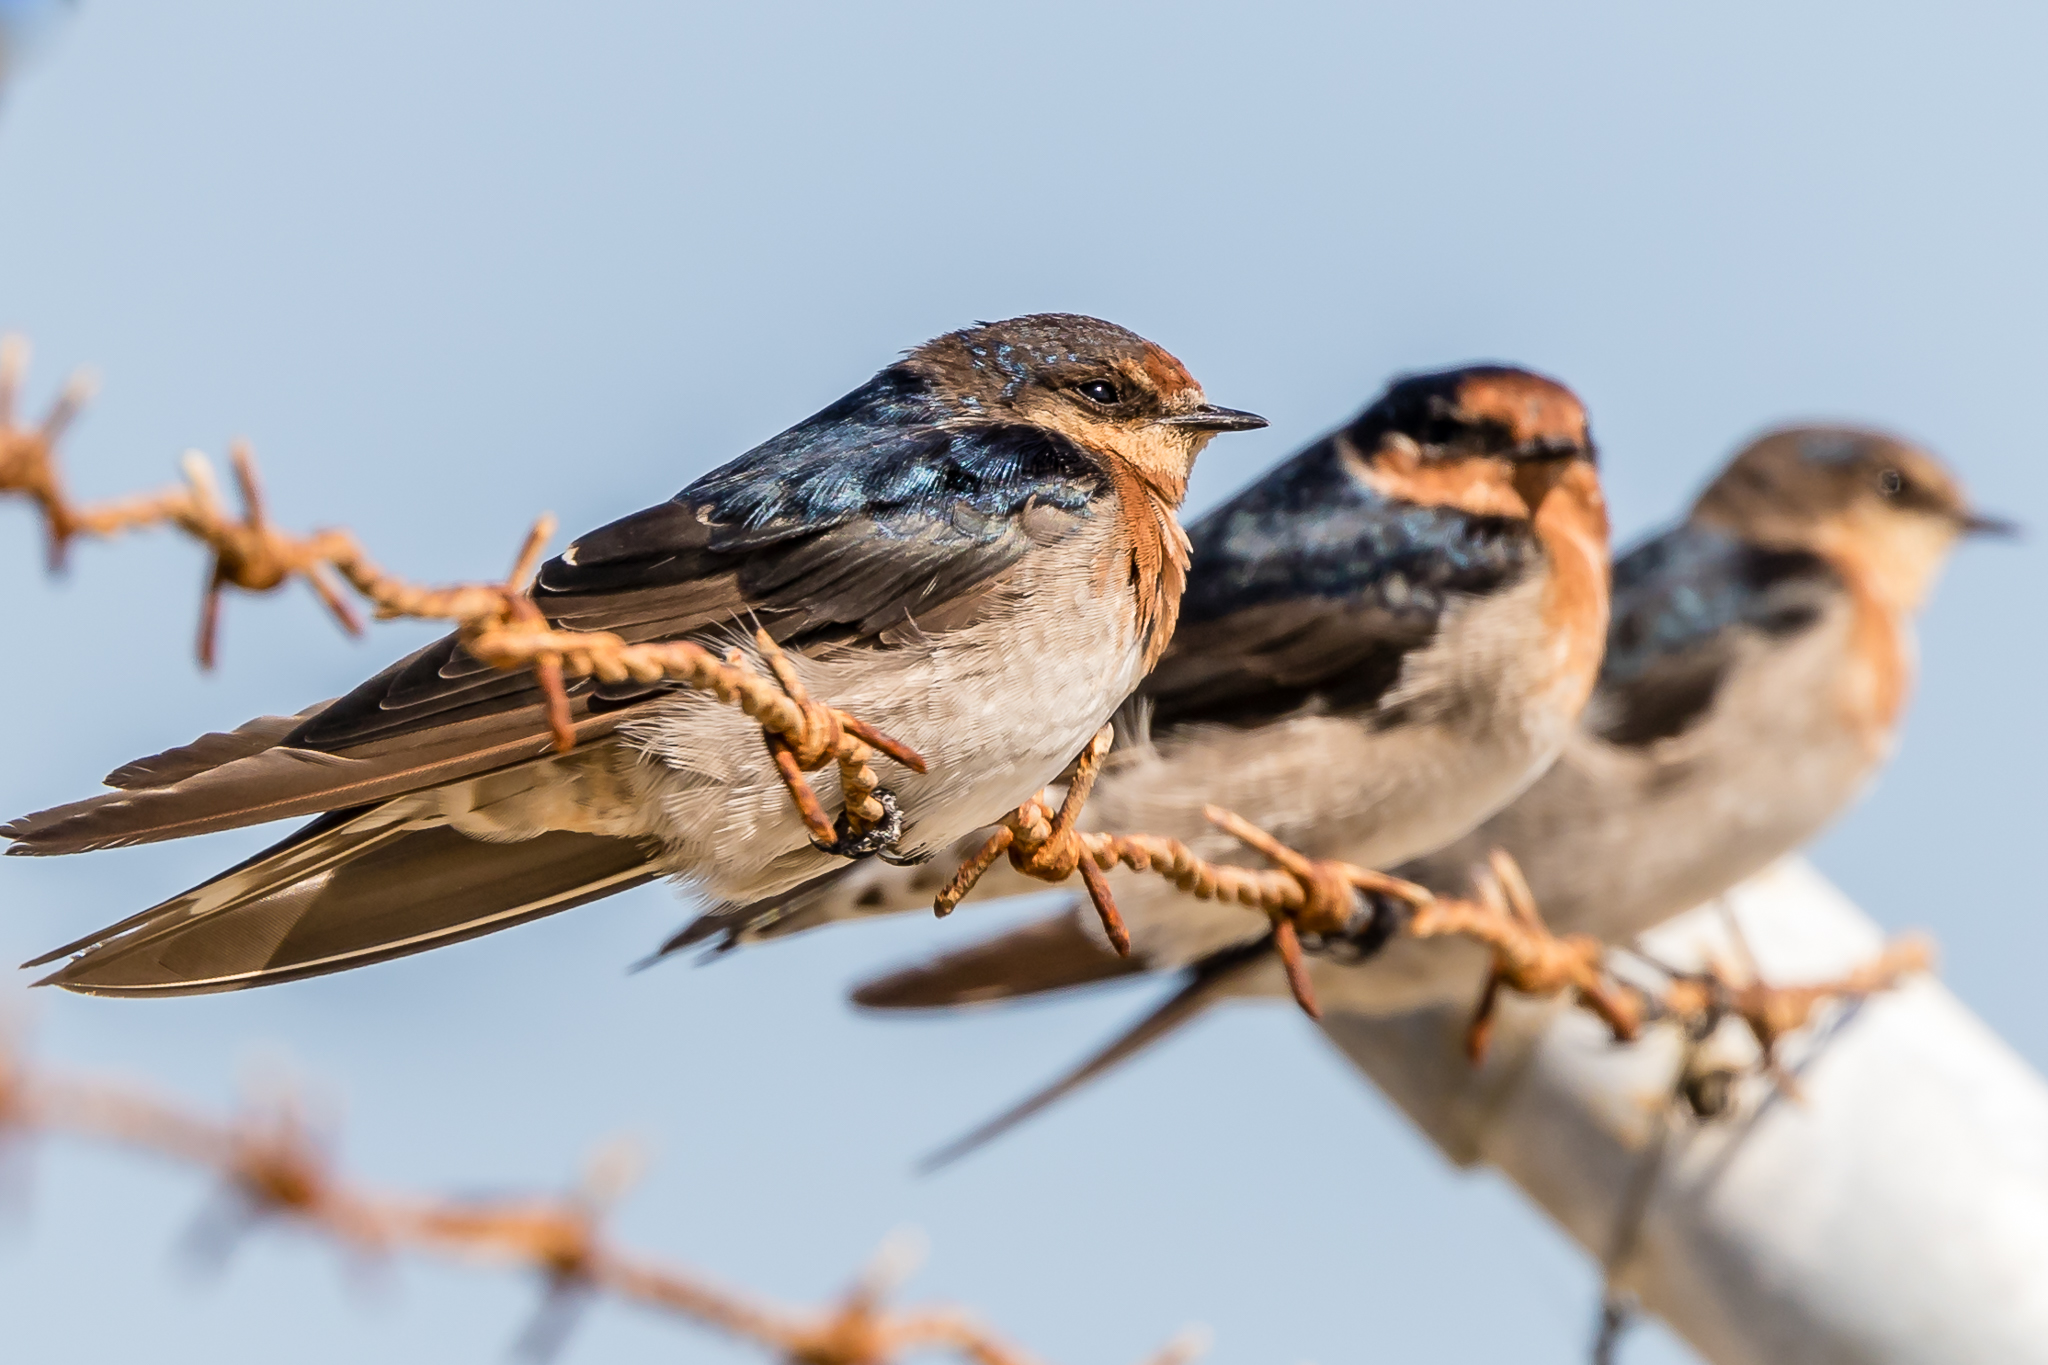 In ninth place, Welcome Swallows swoop for insects over parks, playgrounds and ponds.